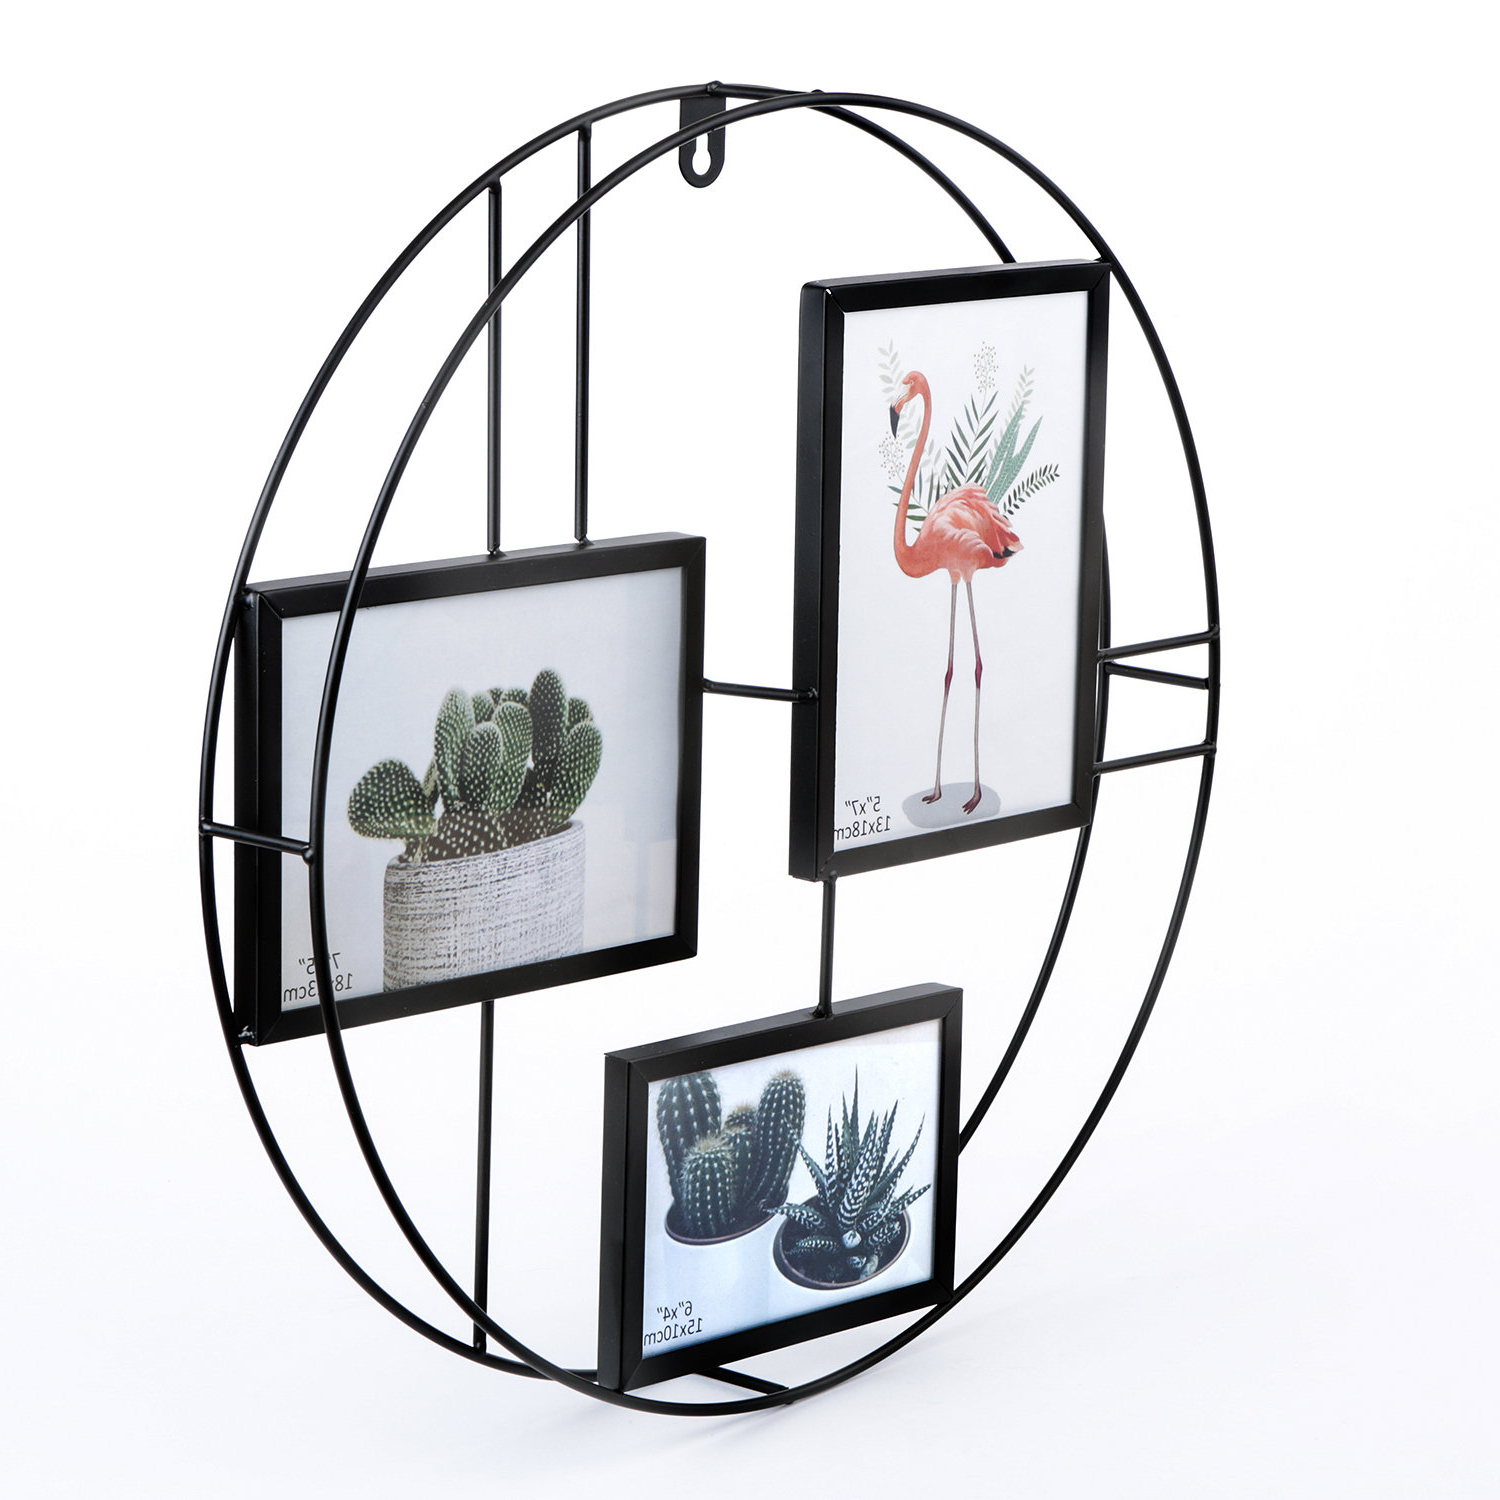 Joss & Main For Most Current Millanocket Metal Wheel Photo Holder Wall Decor (View 4 of 20)